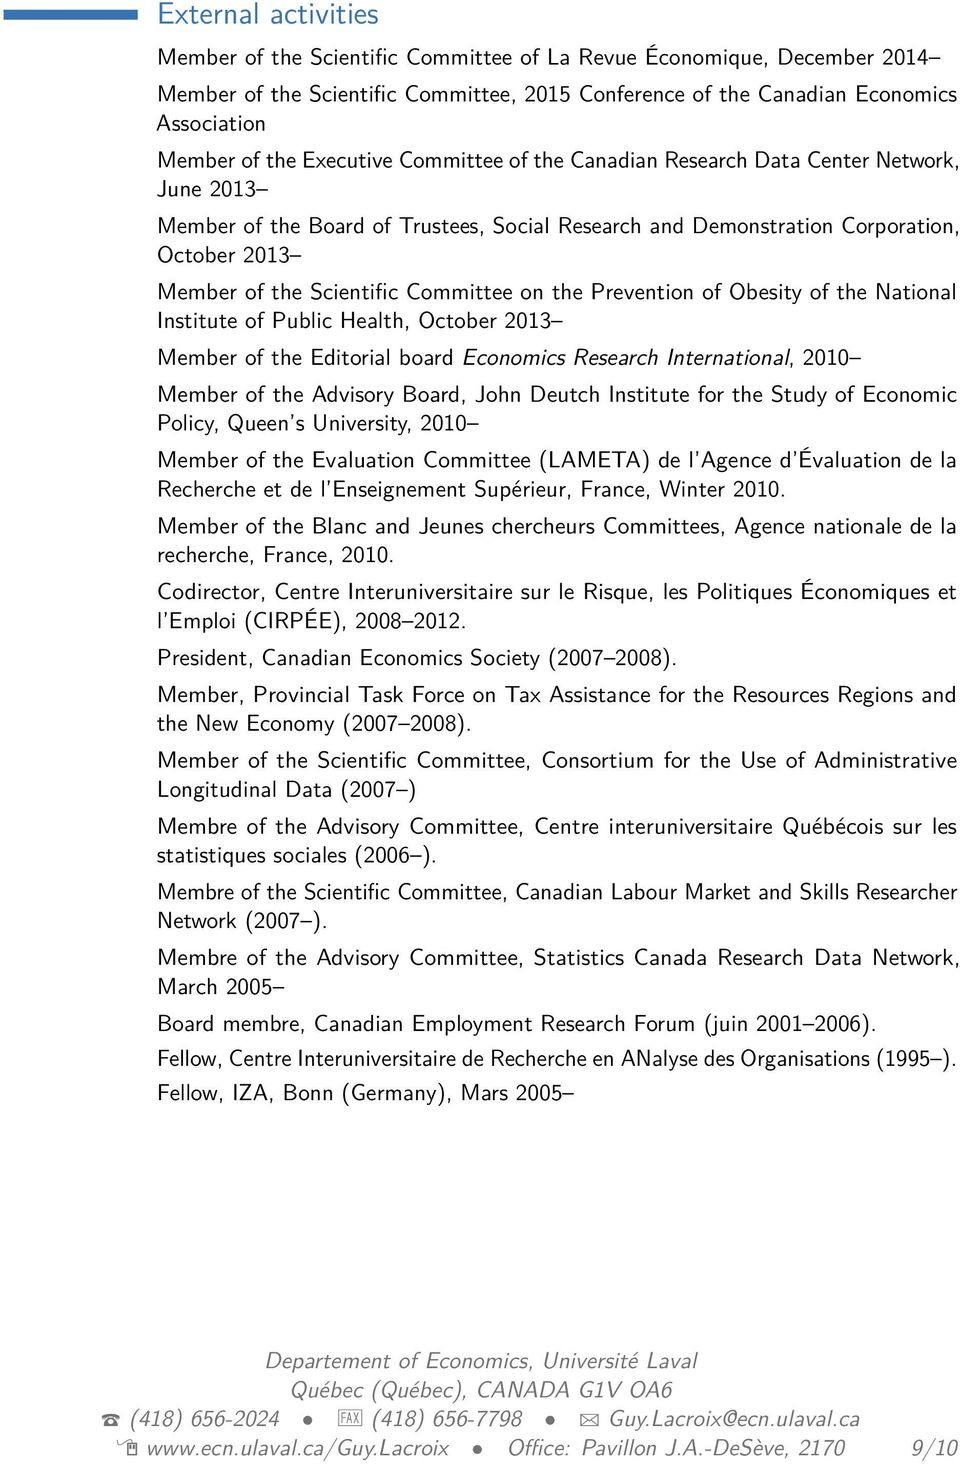 Committee on the Prevention of Obesity of the National Institute of Public Health, October 2013 Member of the Editorial board Economics Research International, 2010 Member of the Advisory Board, John